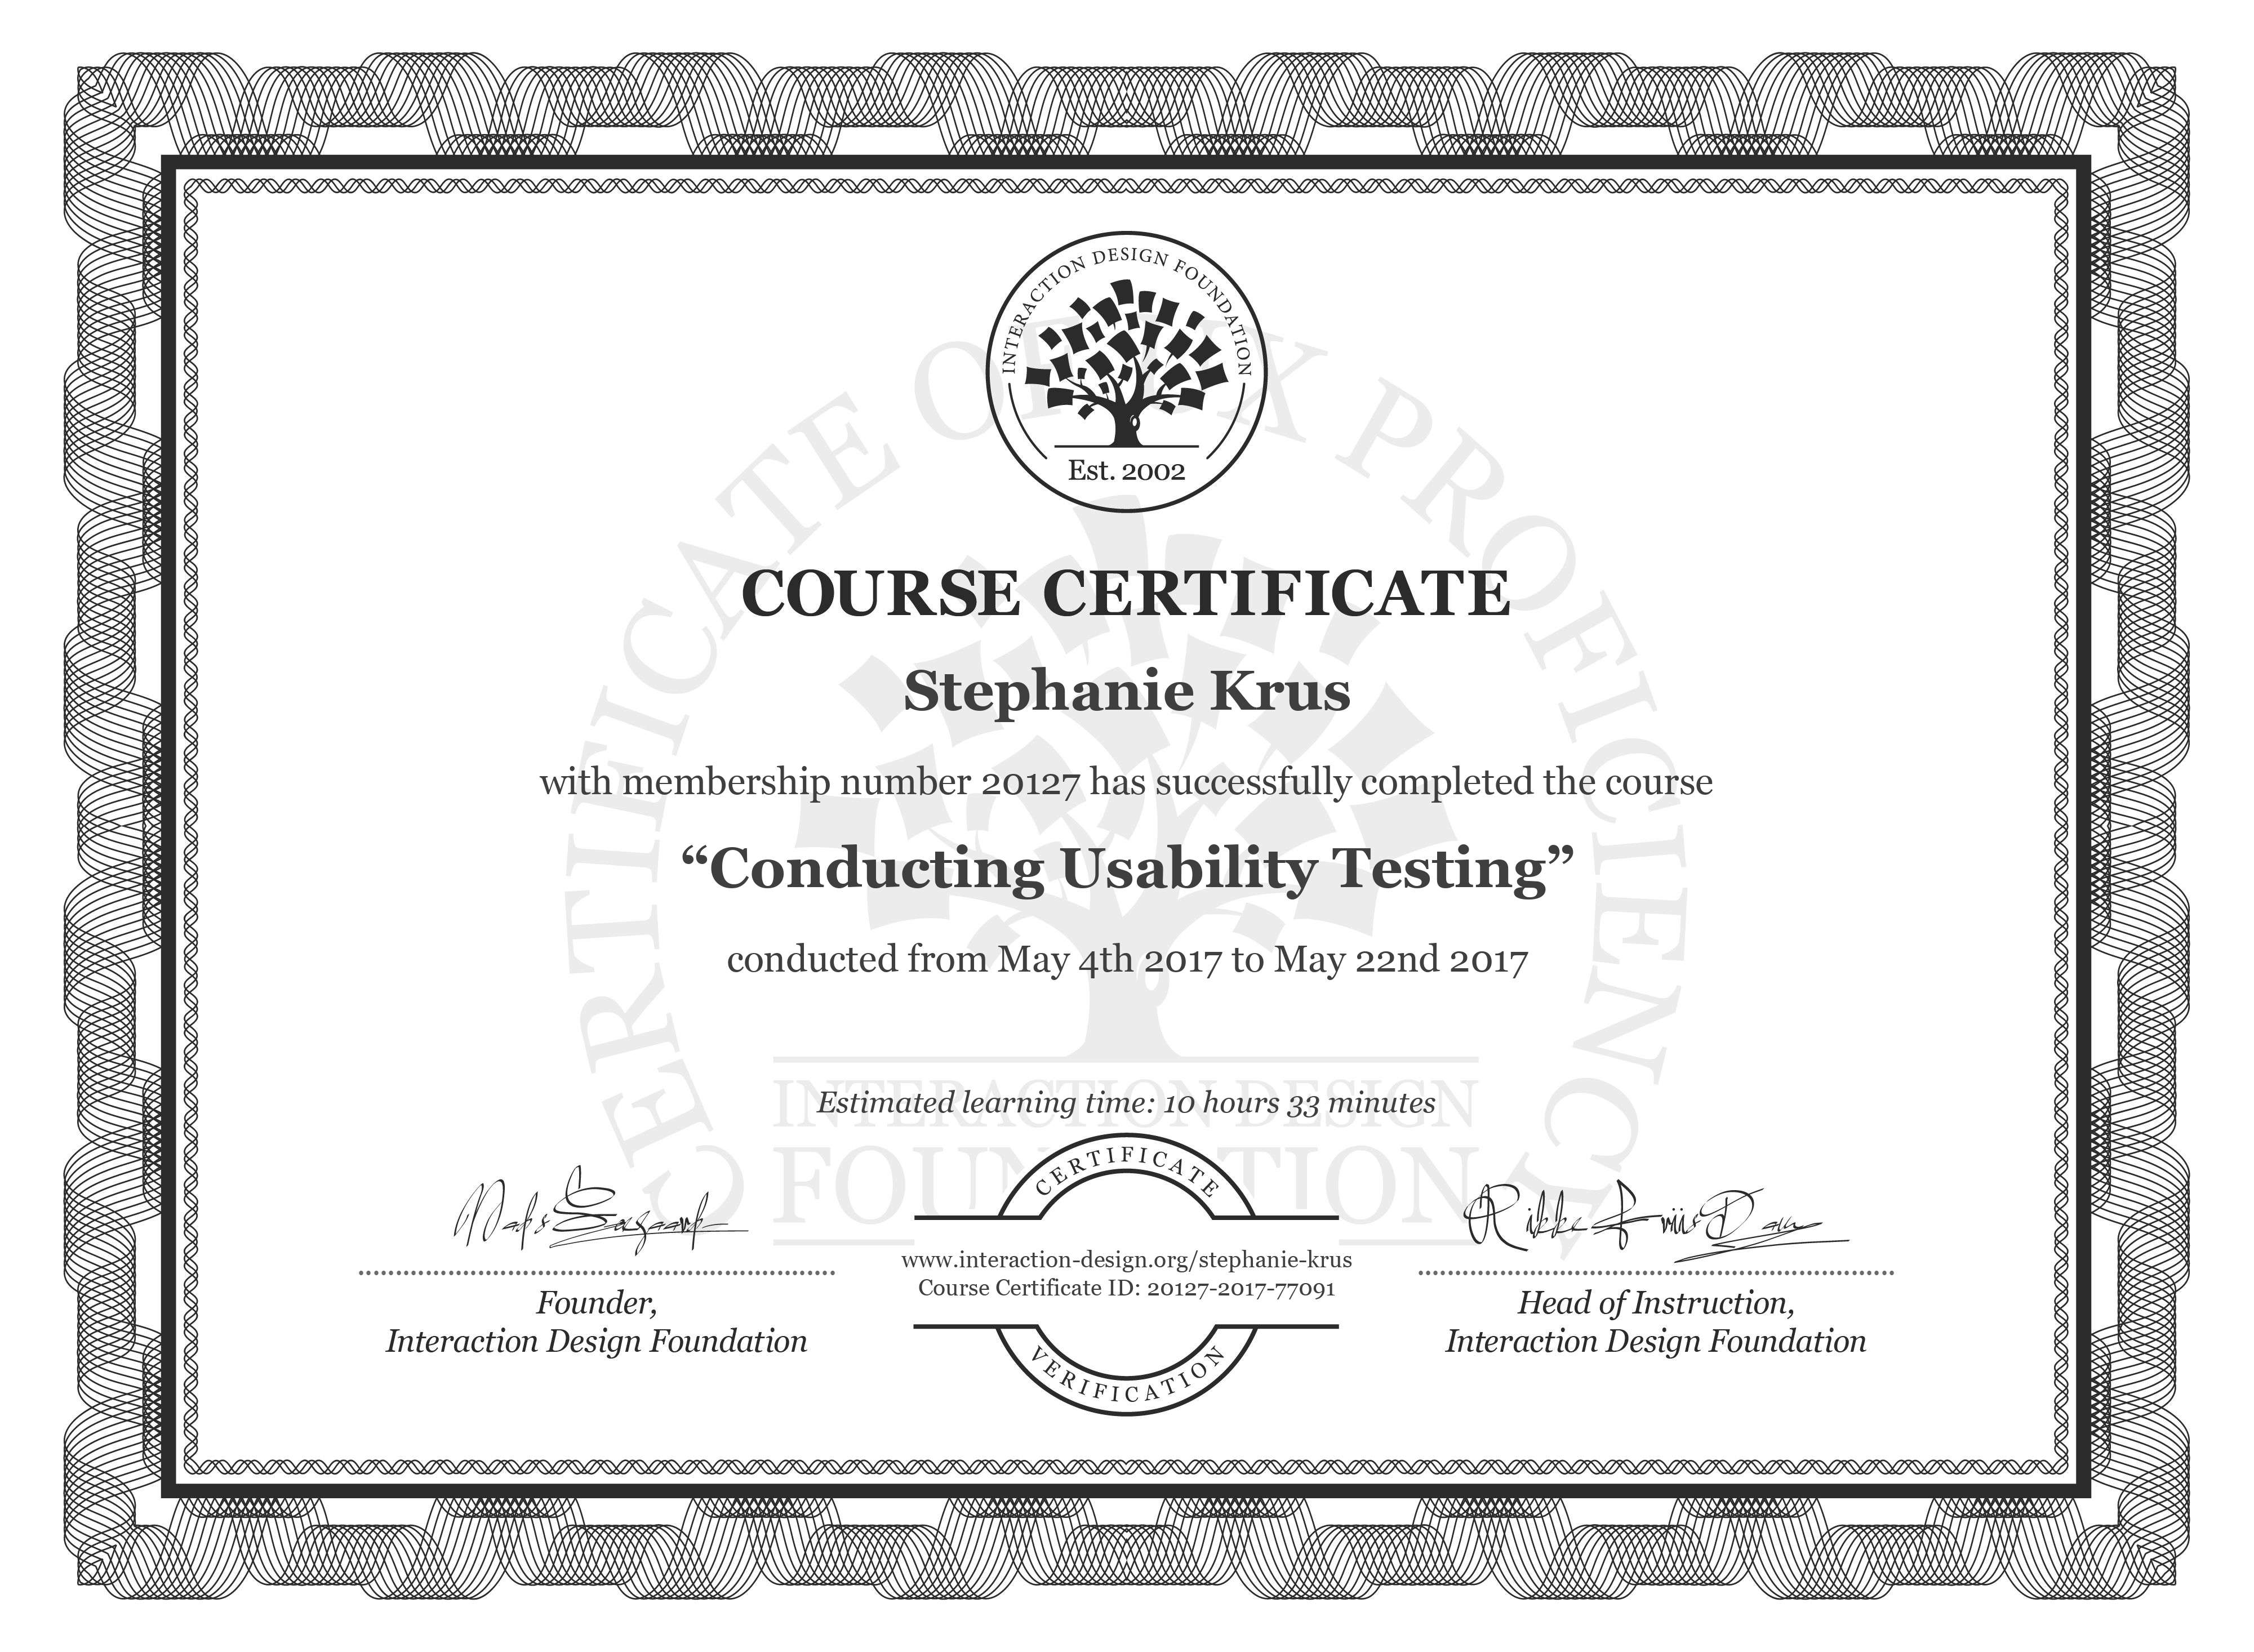 Stephanie Krus: Course Certificate - Conducting Usability Testing